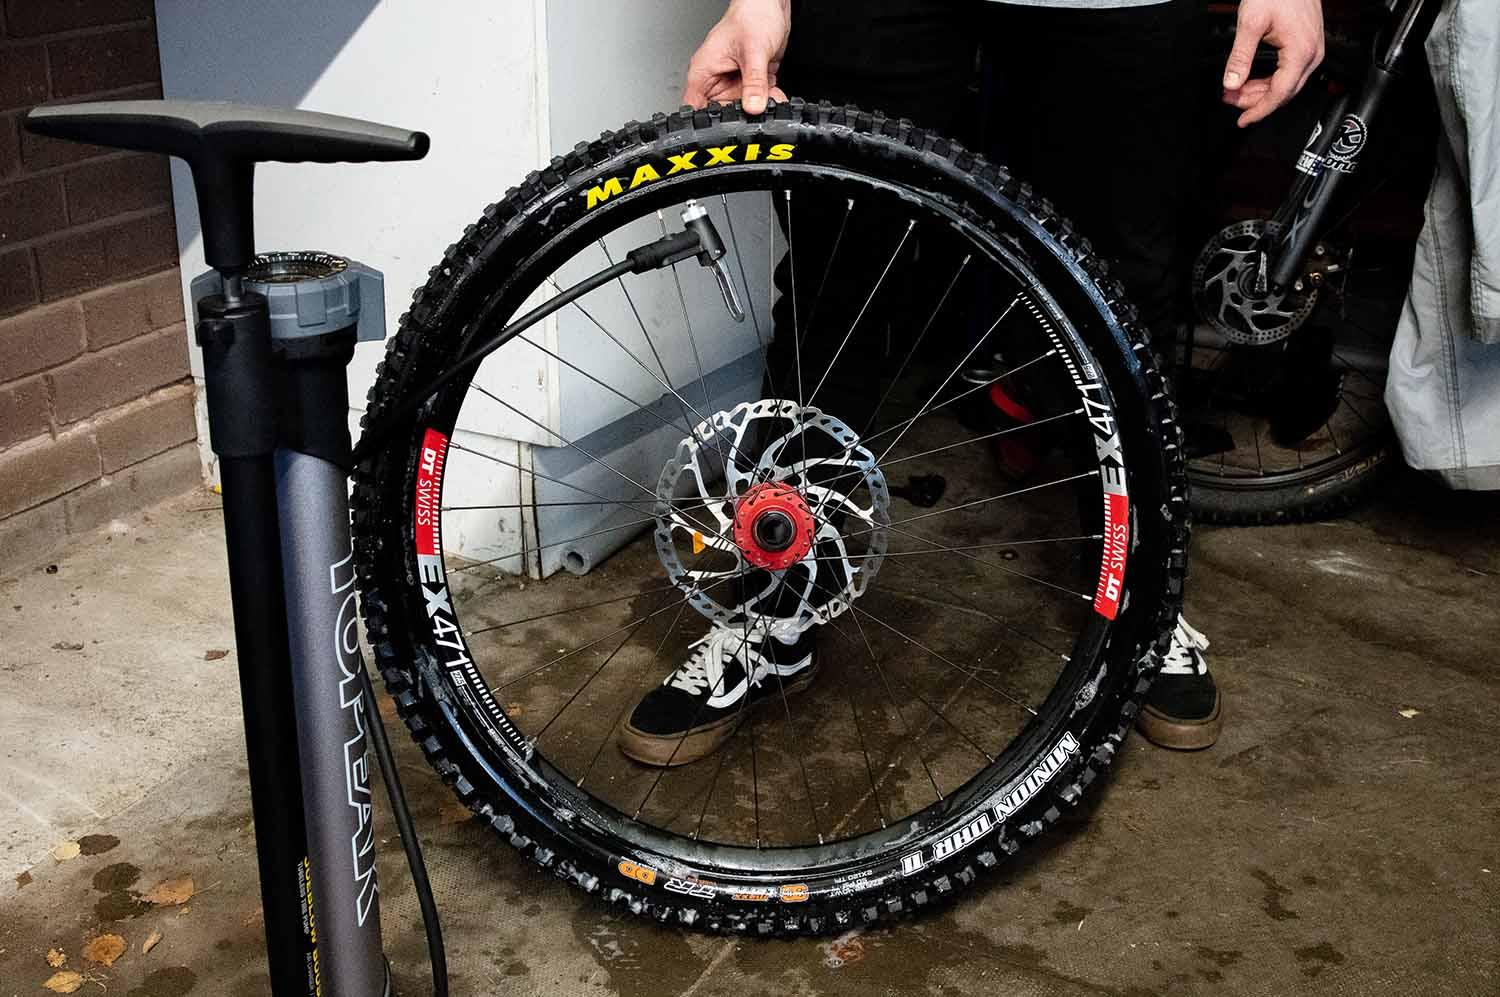 Inflating a tubeless tyre